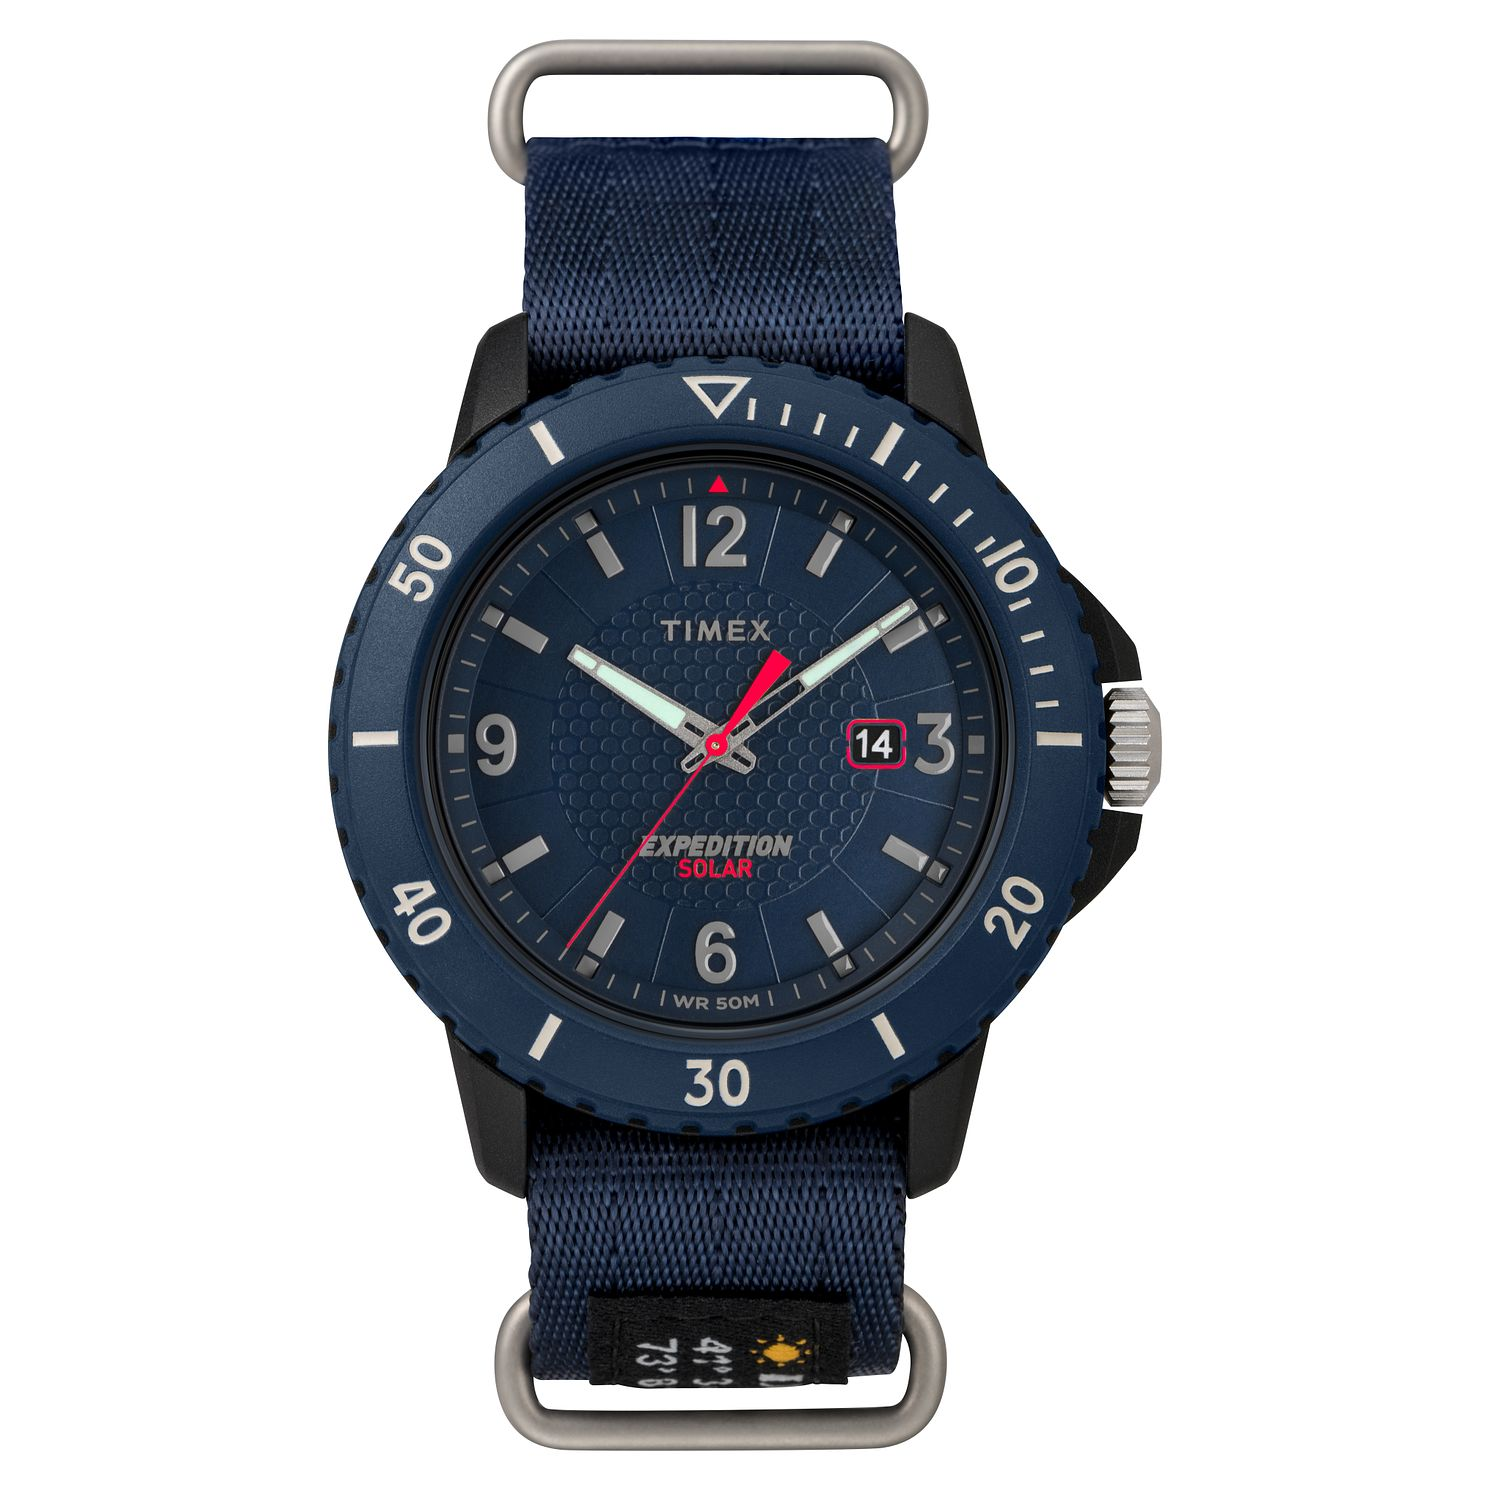 Timex Expedition Gallatin Solar Men's Blue Strap Watch - Product number 2375338